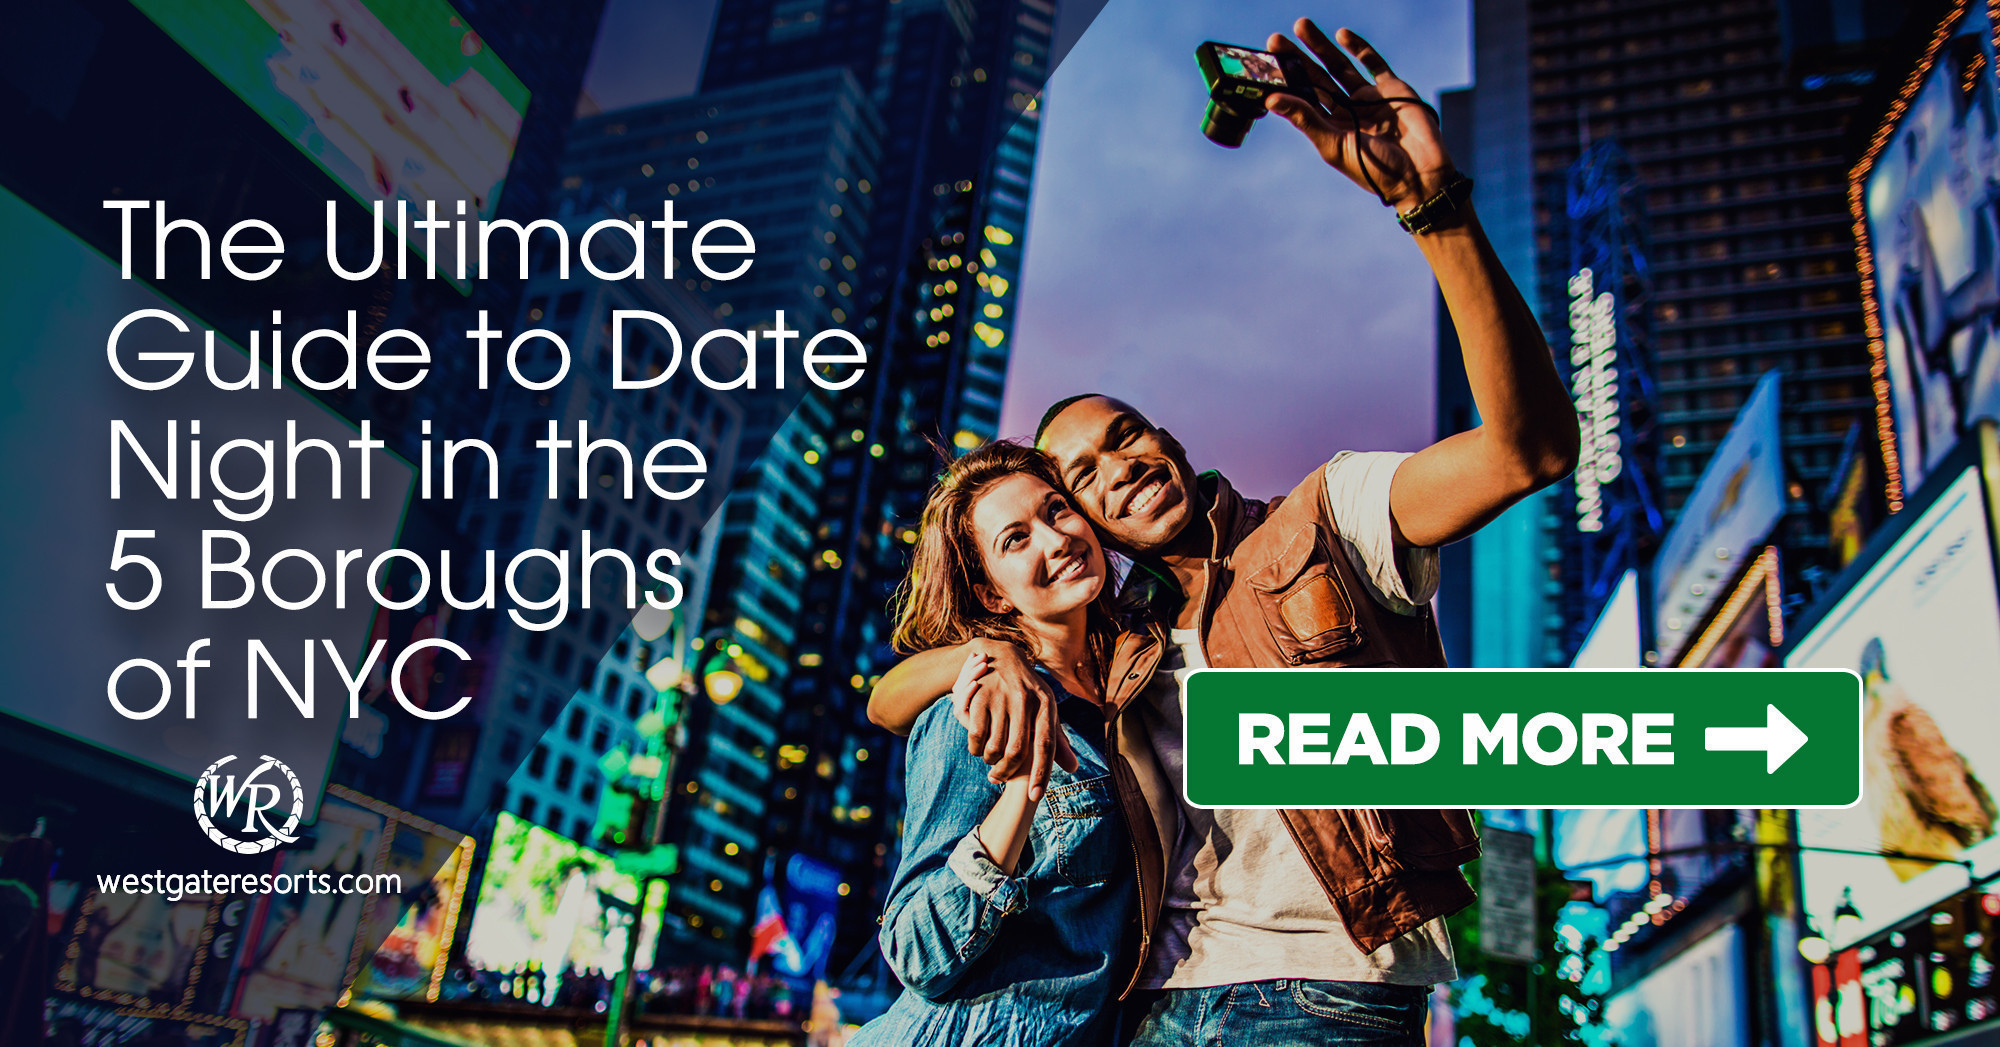 The Ultimate Guide to Date Night in the 5 Boroughs of NYC